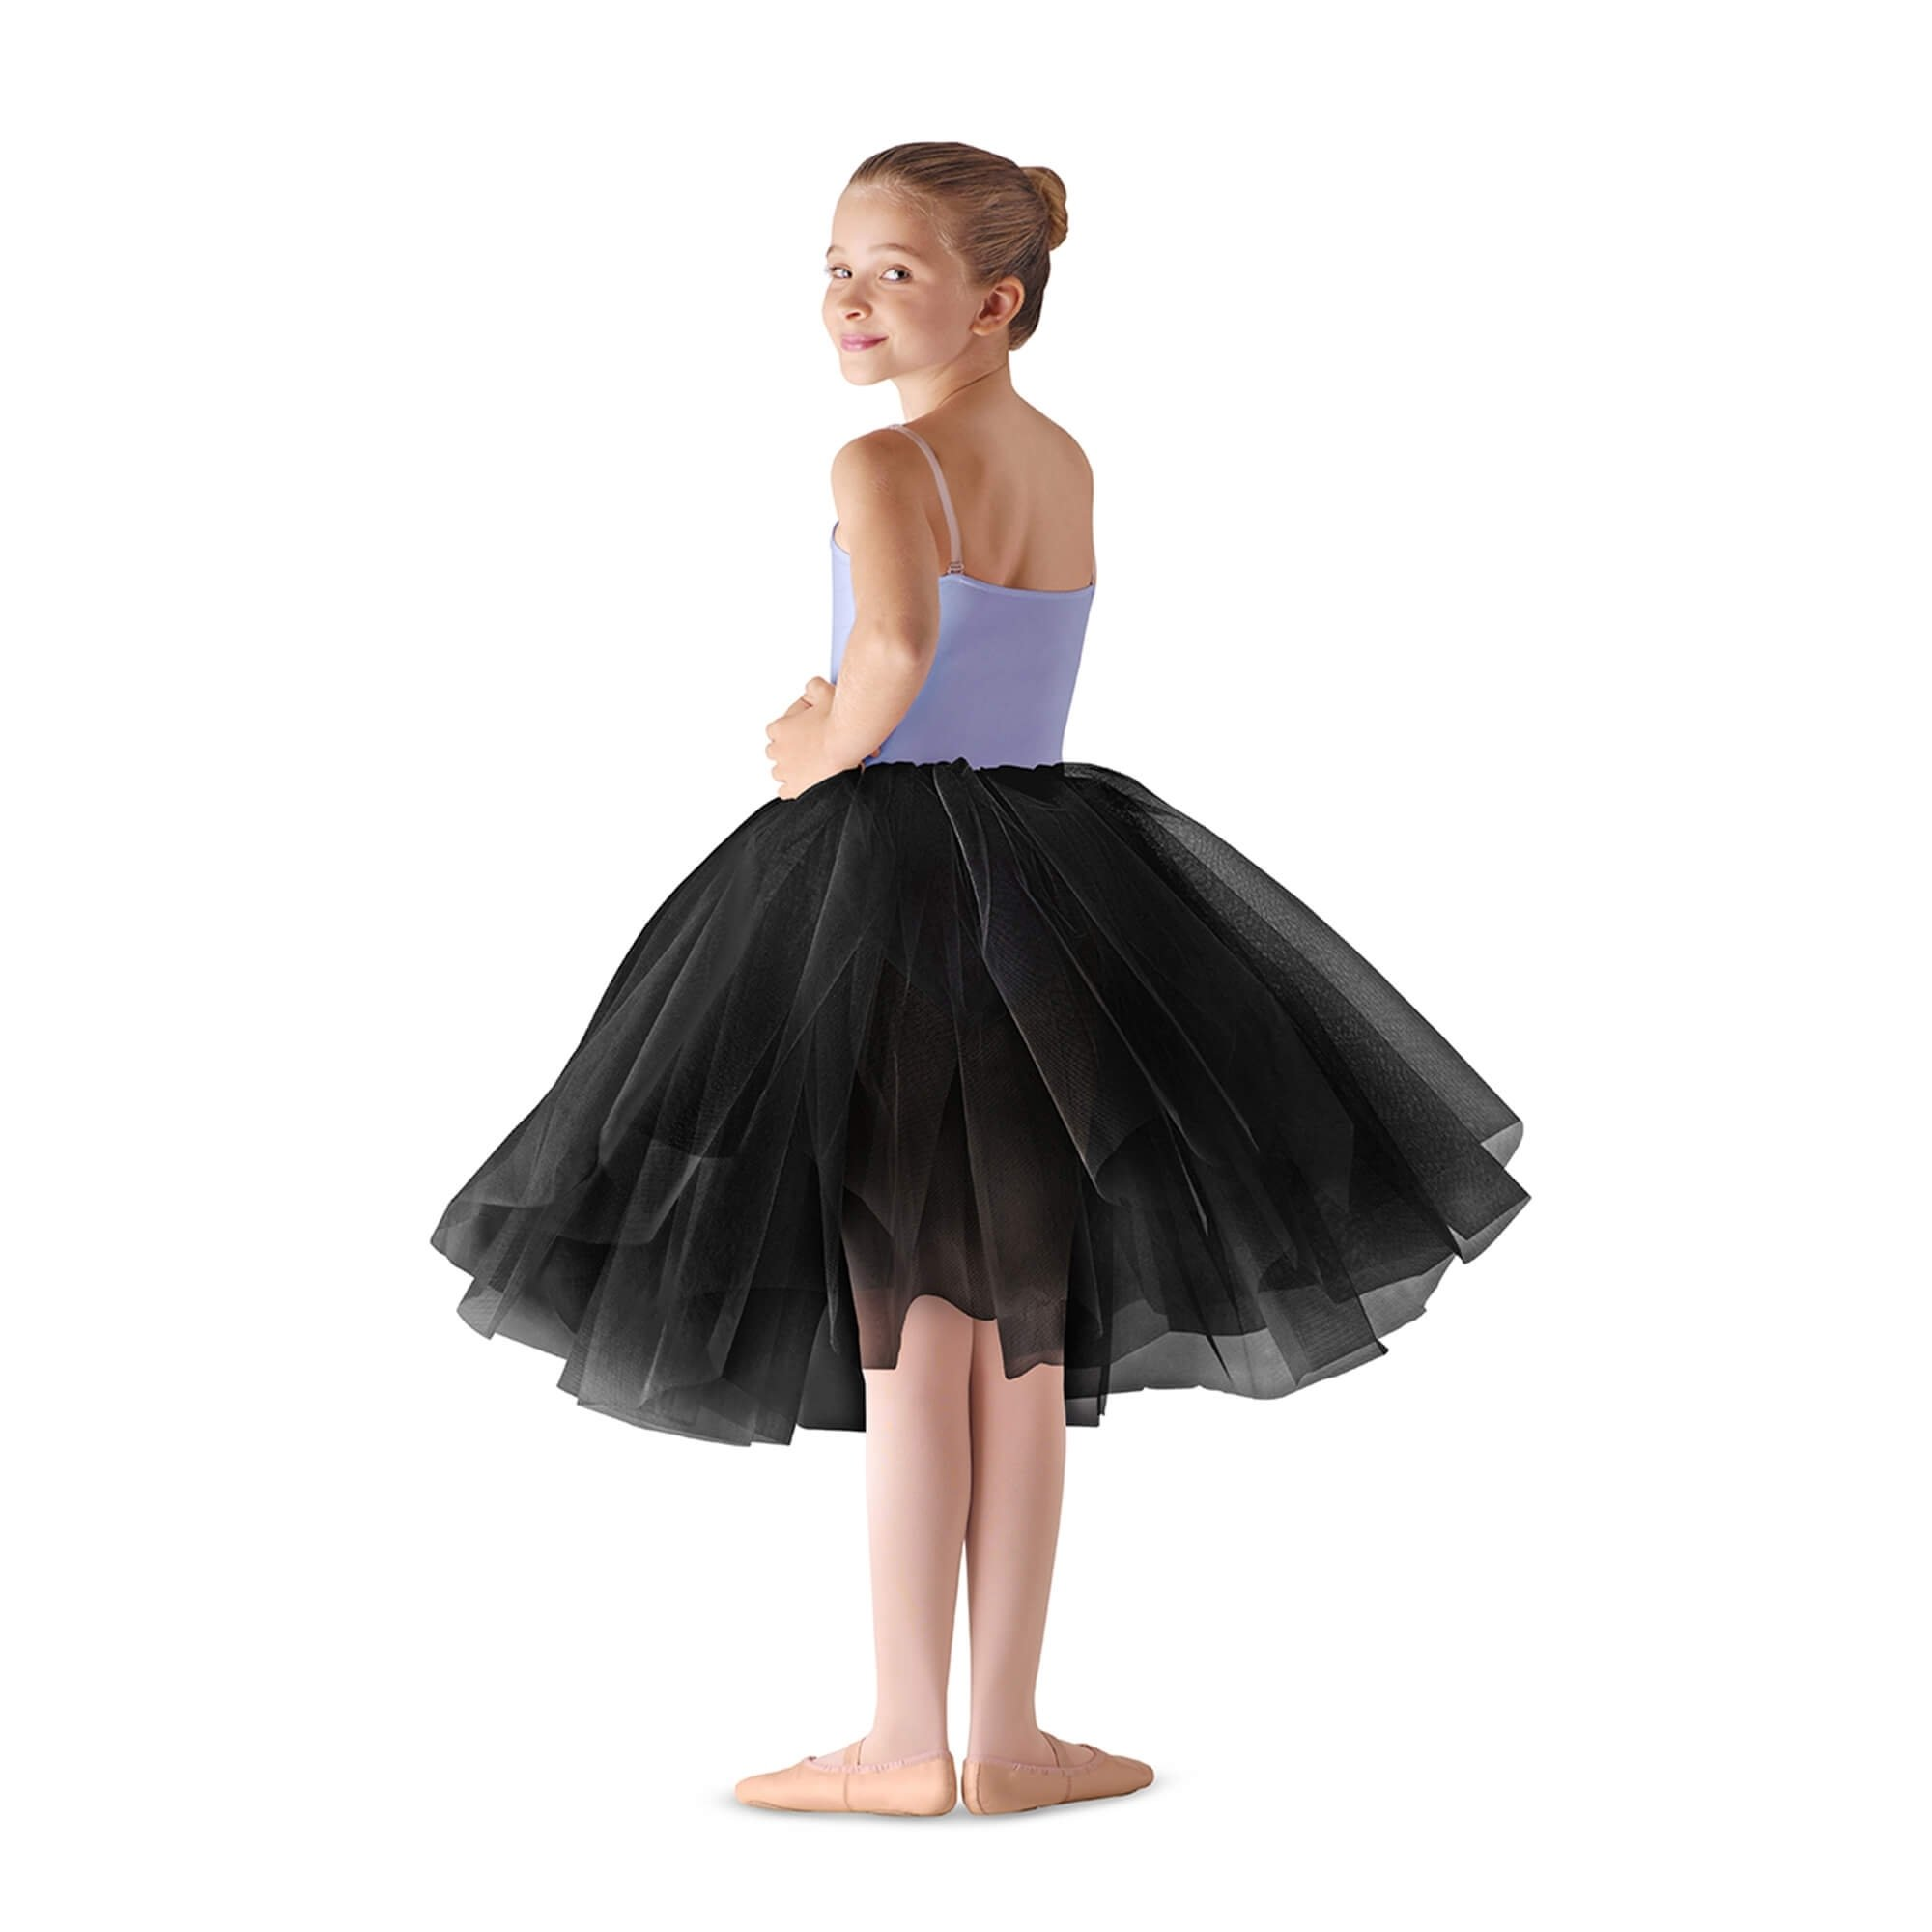 Leo's Children's Firm Tulle Juliet Skirt